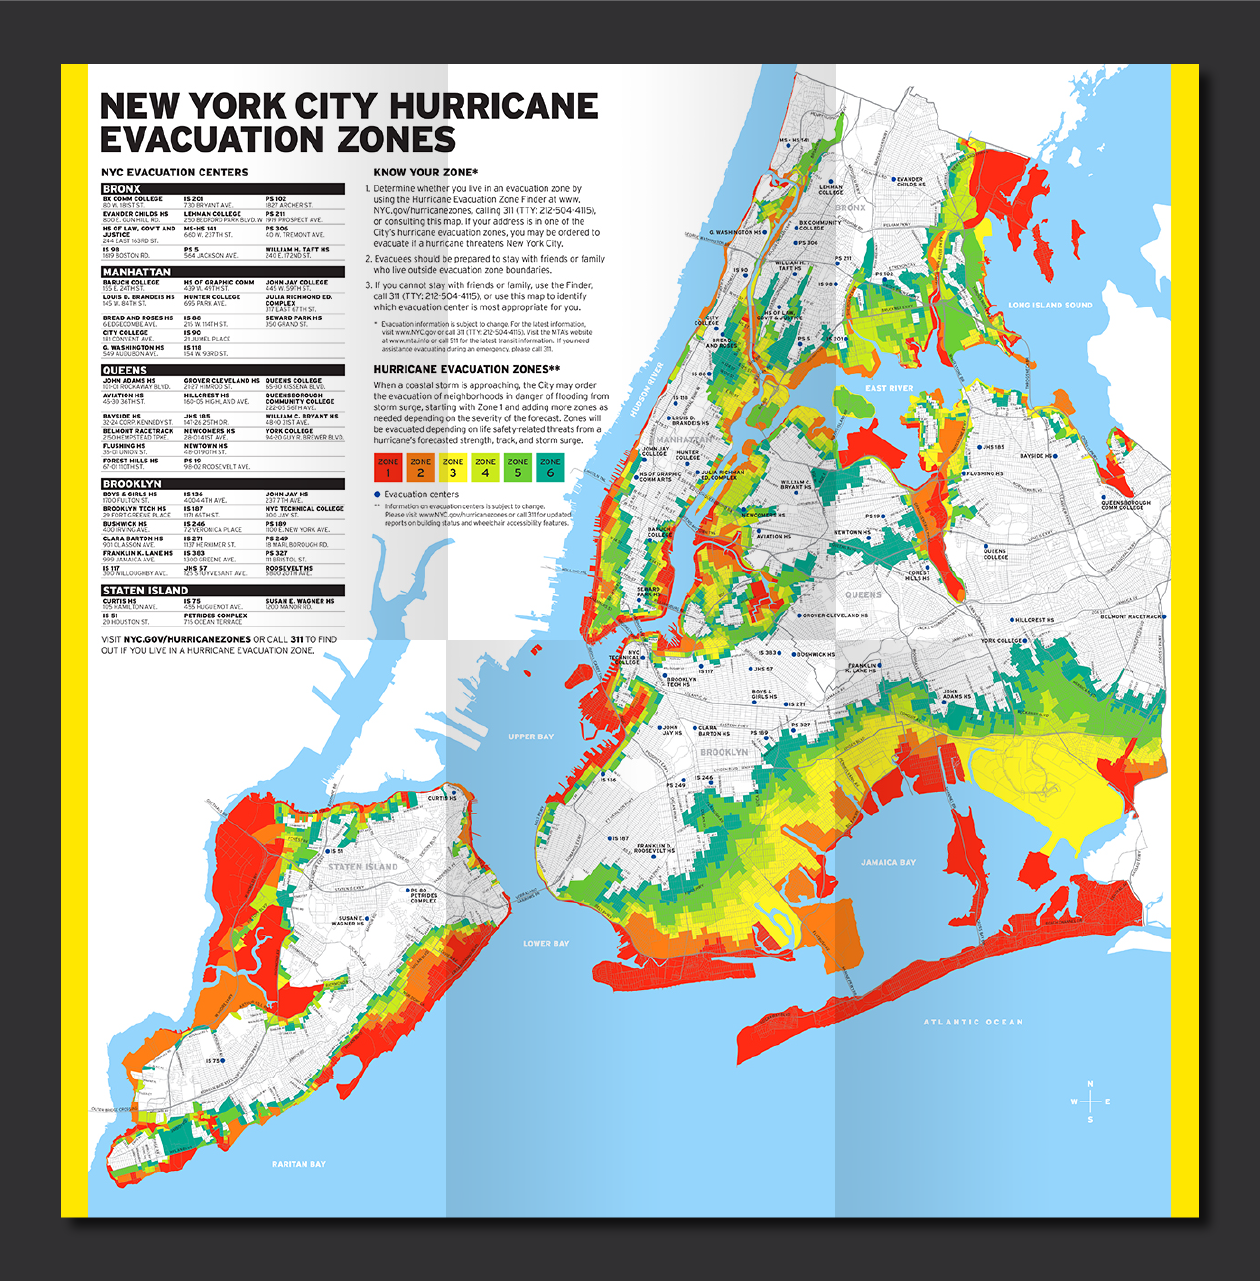 This map uses colored zones – 1 through 6 –to show which areas are at higher risk of evacuation in the event of a hurricane. Those colors are represented in order in the Know Your Zone logo.